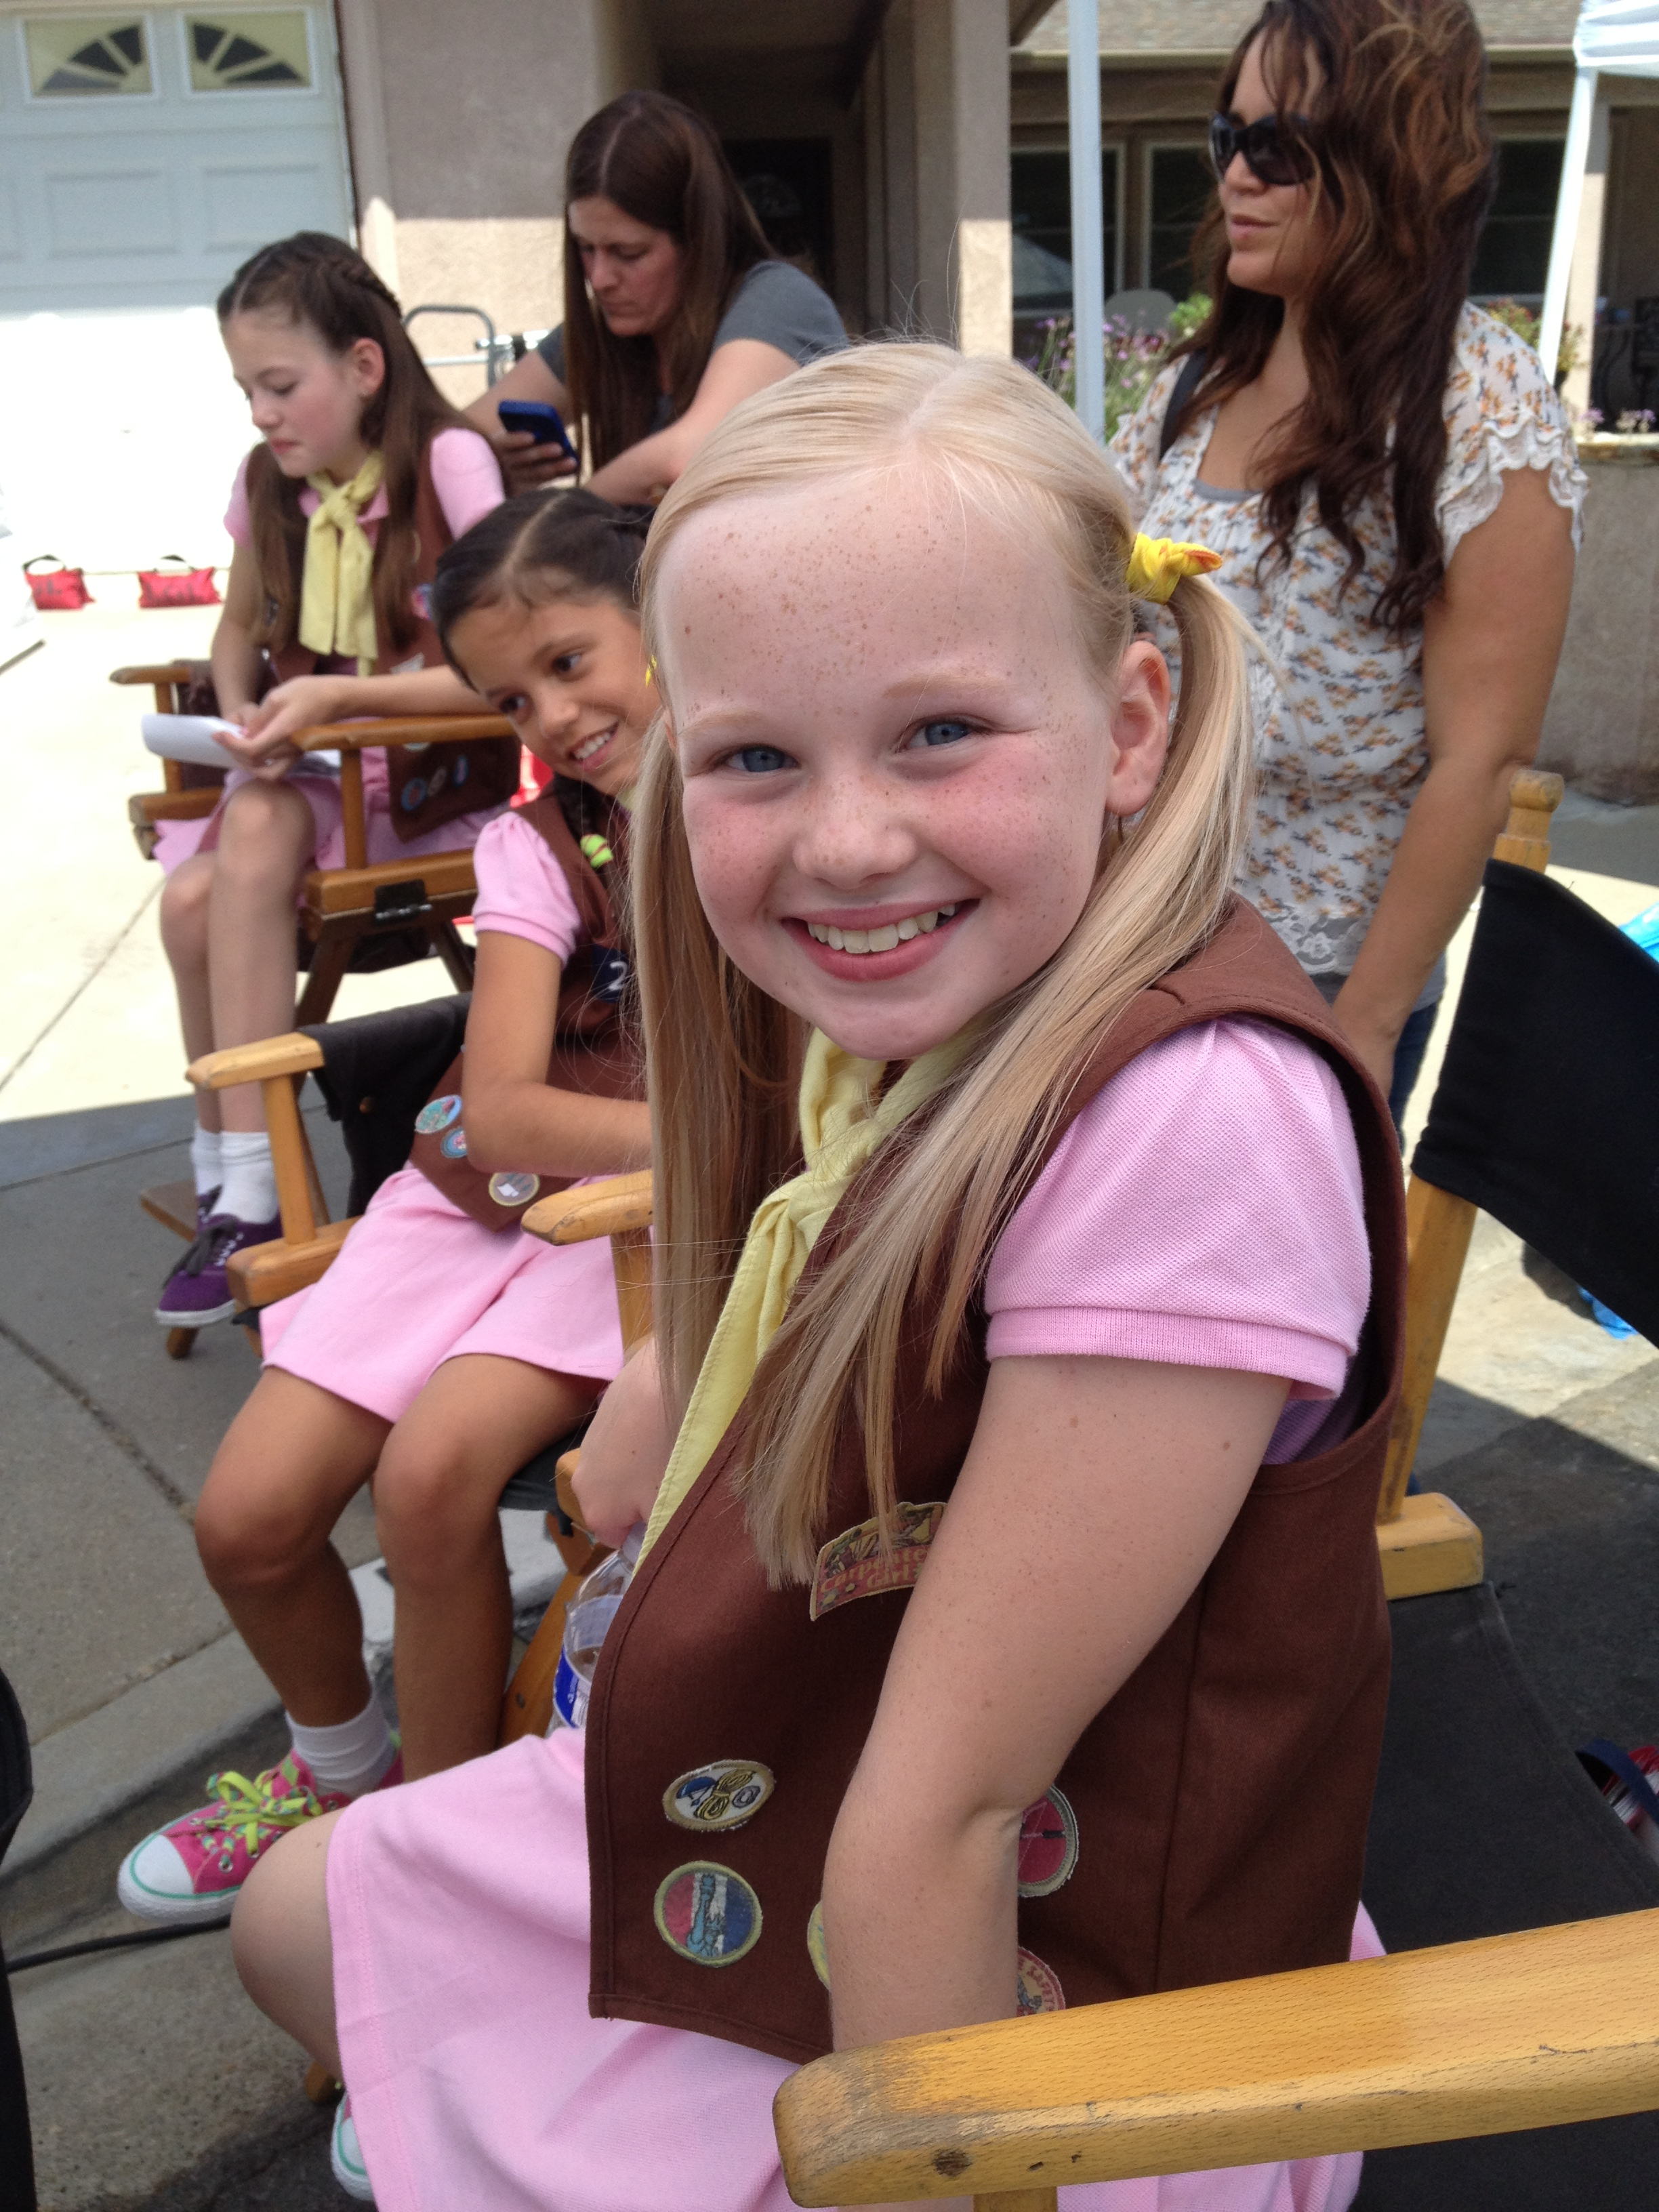 Danielle Parker the set of The Cookie Mobster with Jenna Ortega and Mackenzie Foy